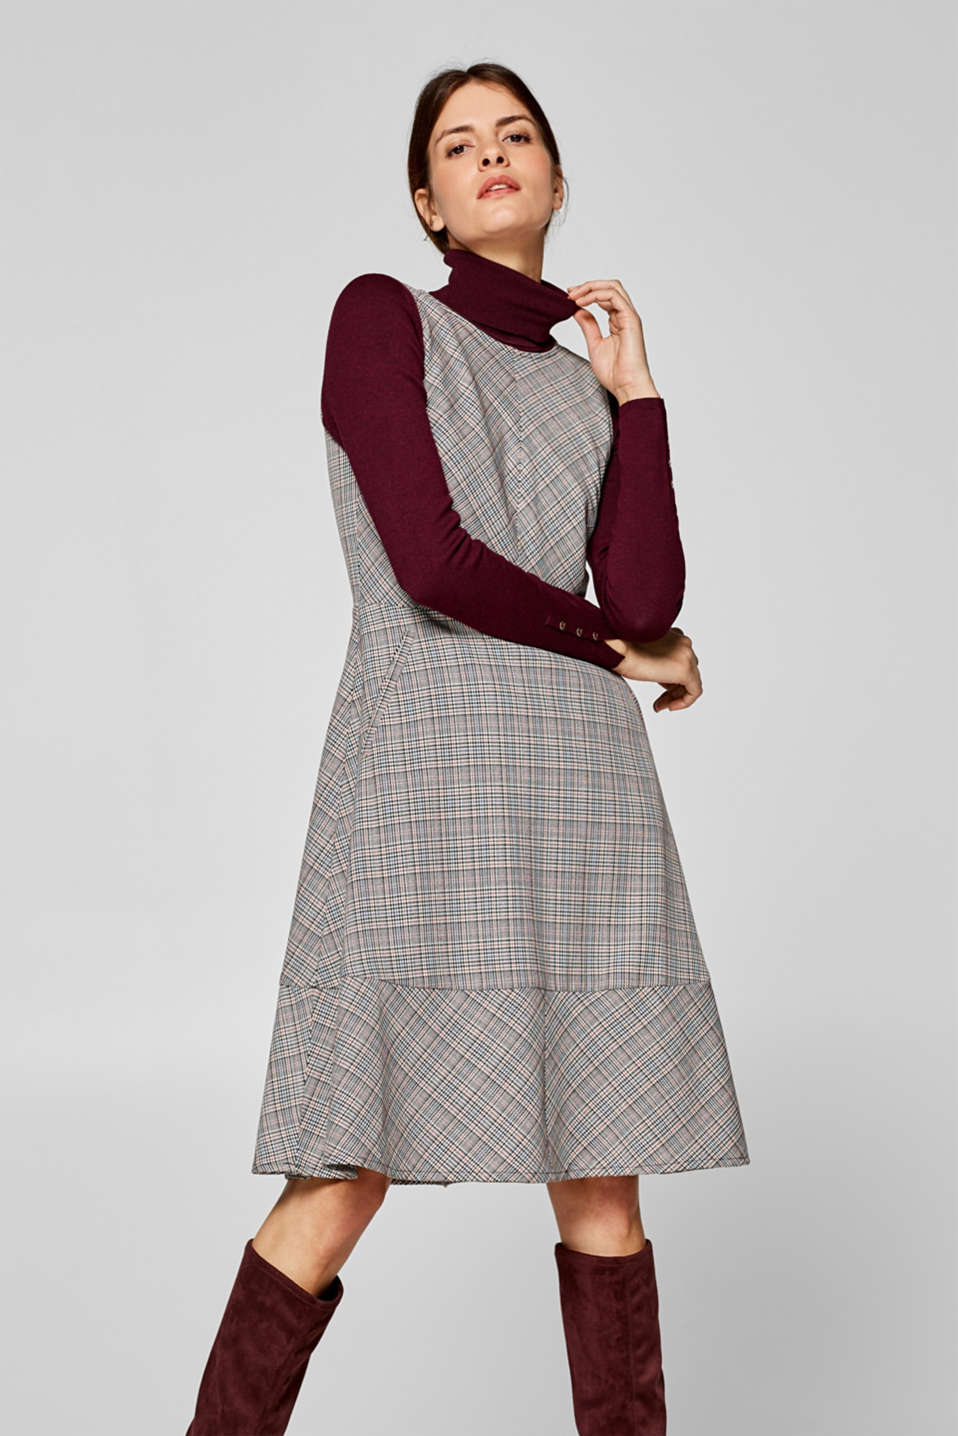 Esprit - Sheath dress with a Prince of Wales check